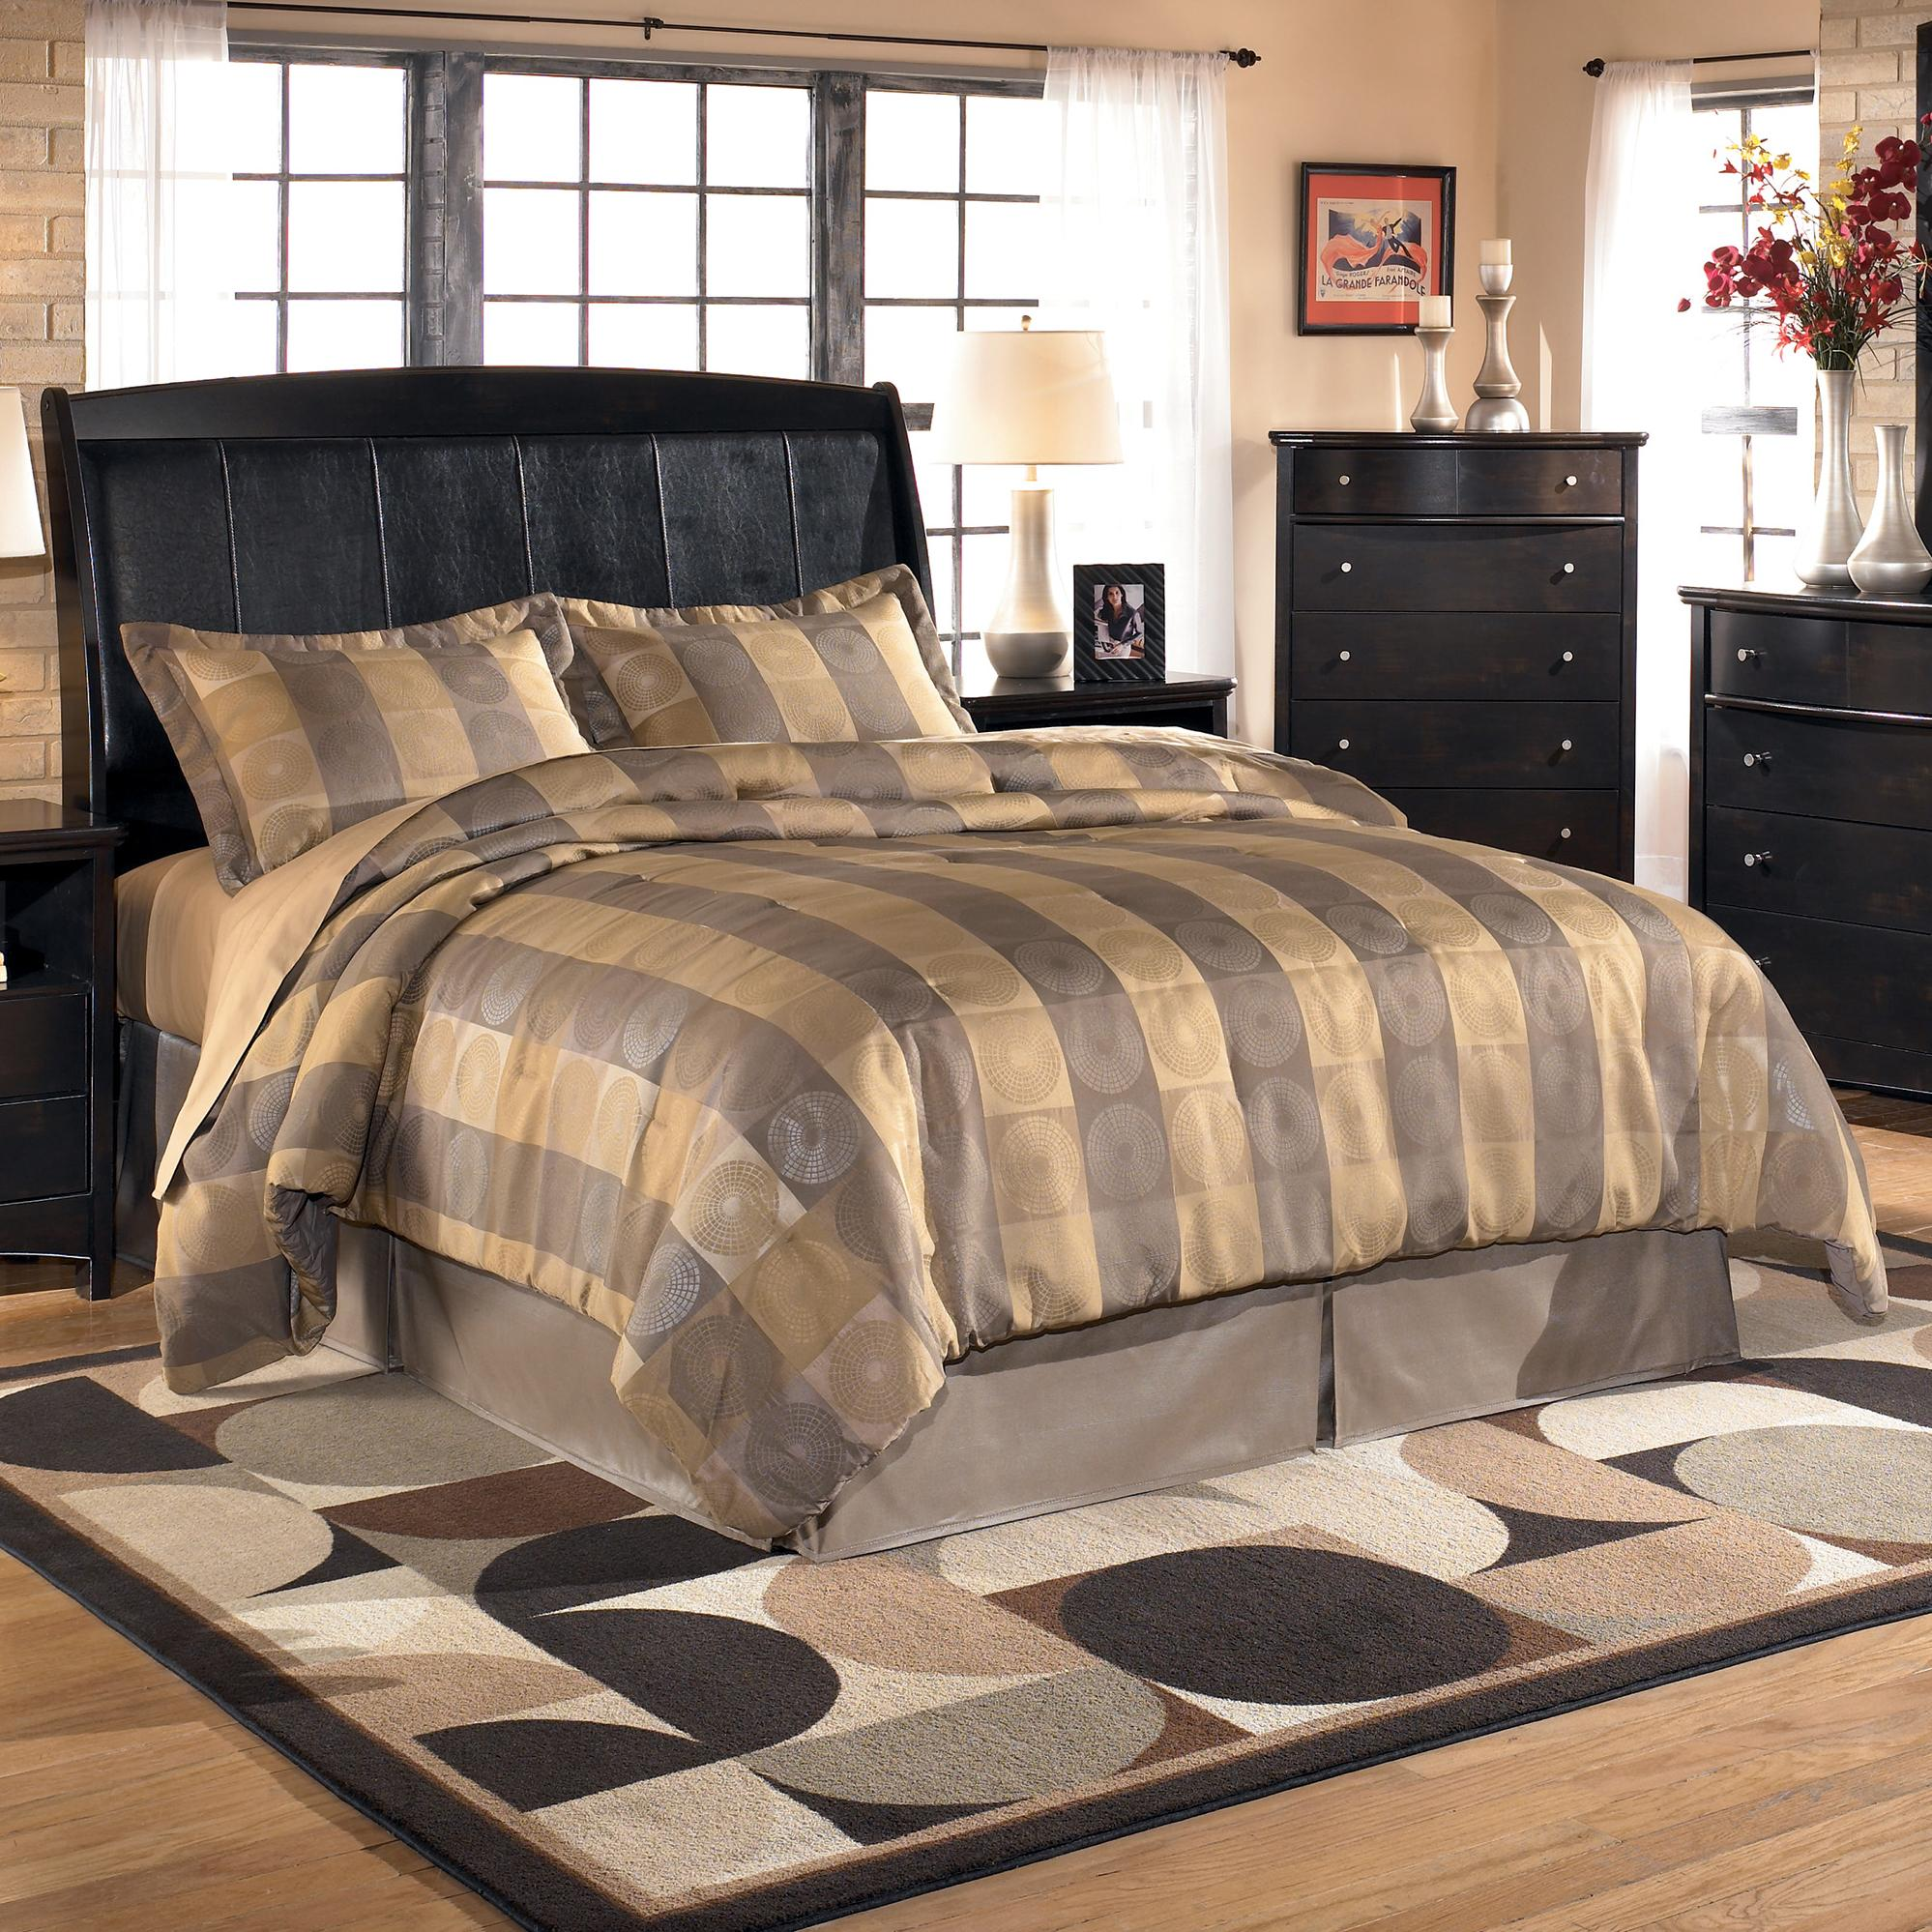 Signature Design by Ashley Harmony King Sleigh Headboard (RTA) - Item Number: B208-78